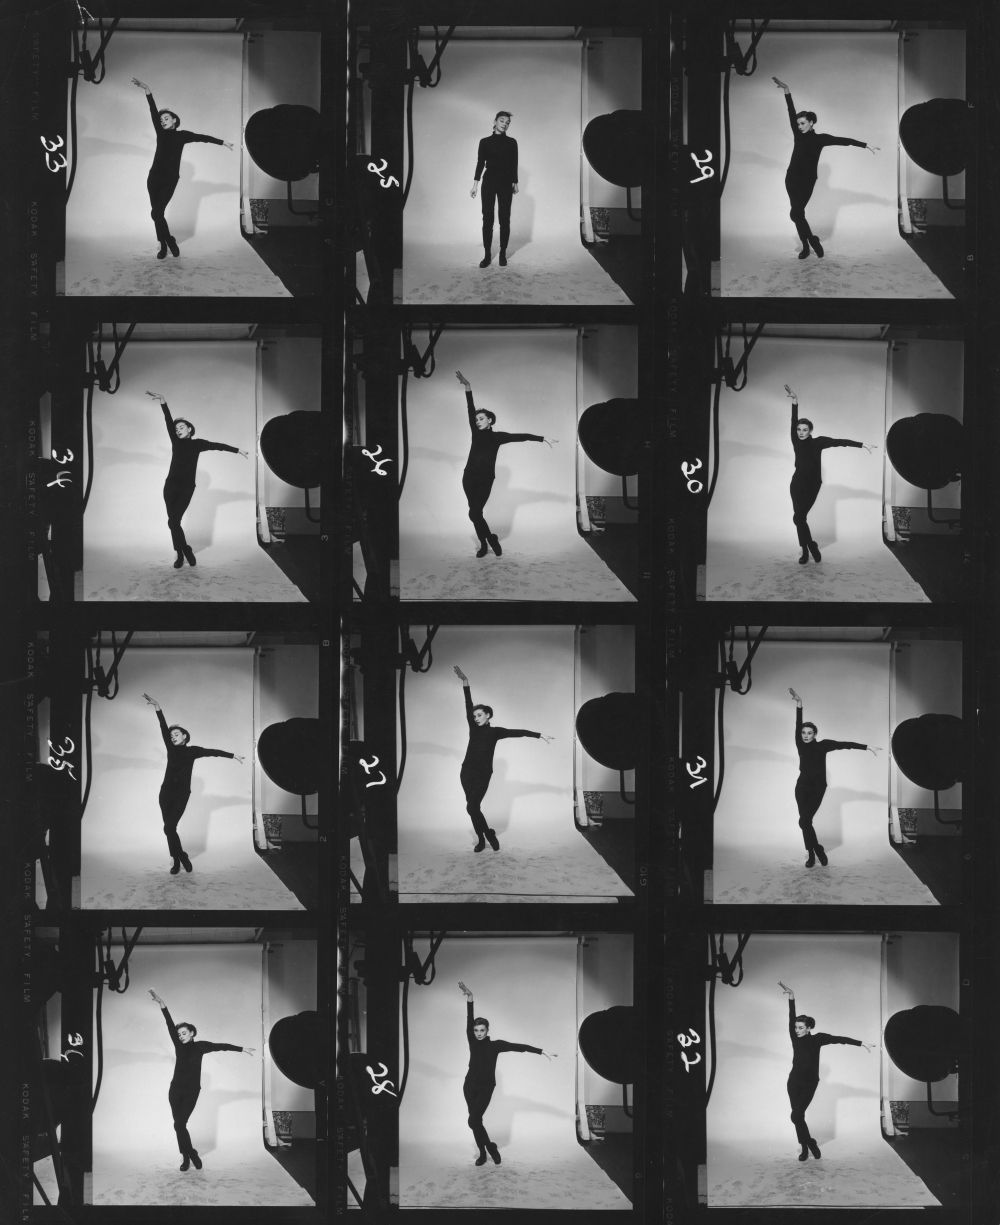 Contact print showing Hepburn dancing. Hepburn plays a Greenwich Village bookshop clerk who is discovered by style photographer Dick Avery (...